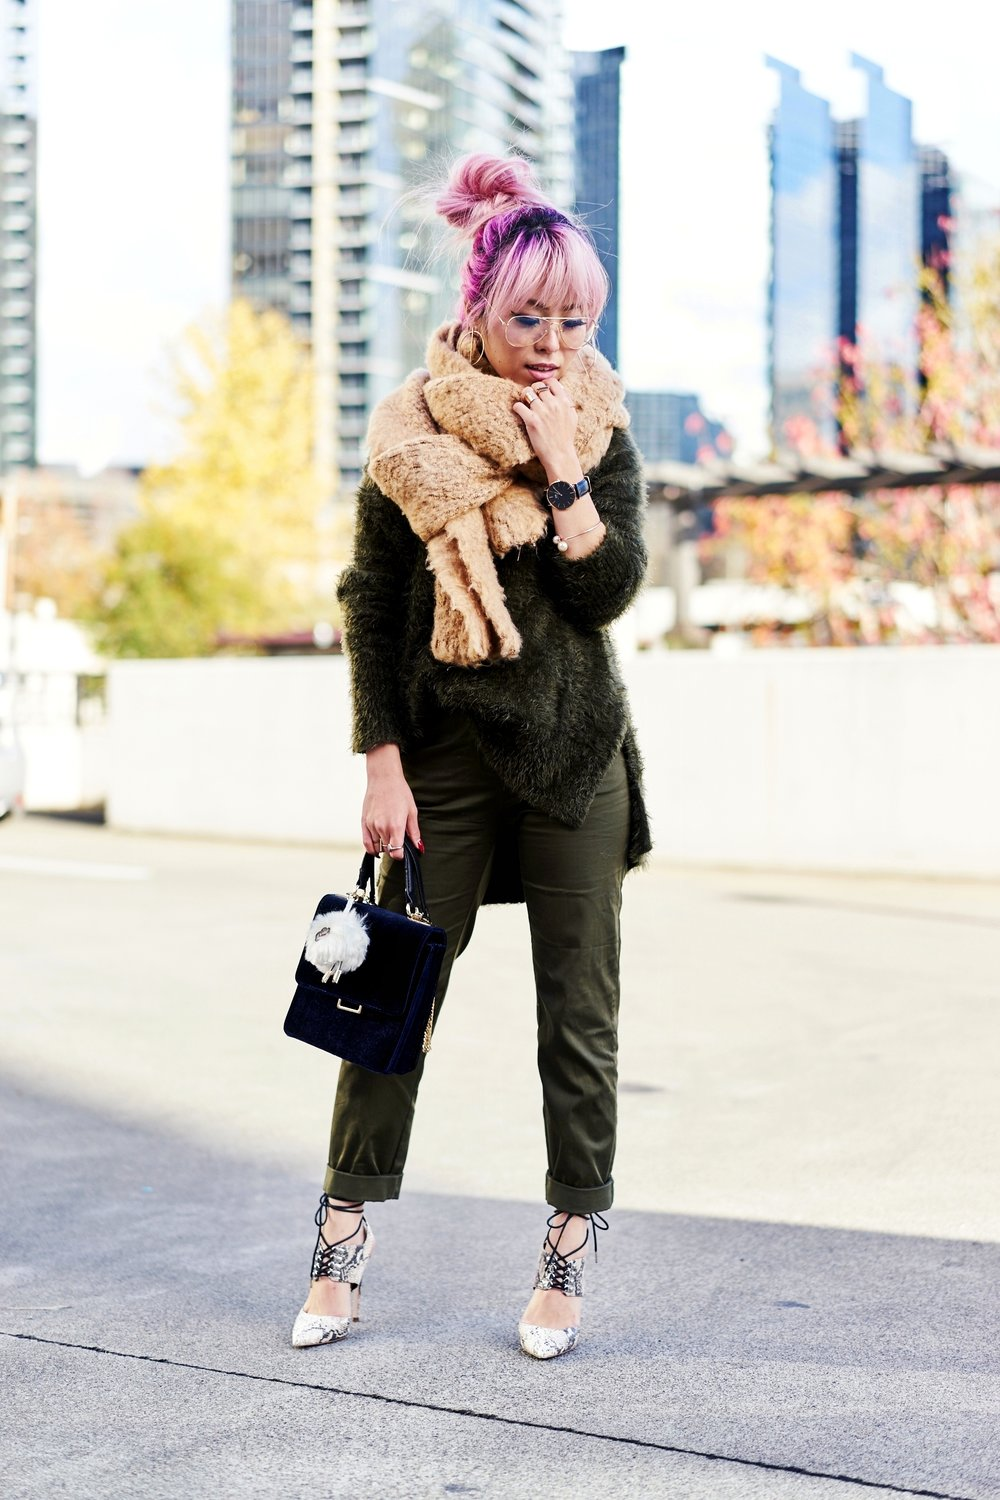 ASOS Oversized Scarf-H&M olive chunky sweater-H&M cropped trousers-ASOS python lace-up pumps-ZARA navy velvet bag-mango earrings-Daniel Wellington Watch-Clear Lens aviator-Aika's Love Closet-Seattle Style blogger-japanese-pink hair-colored hair 7